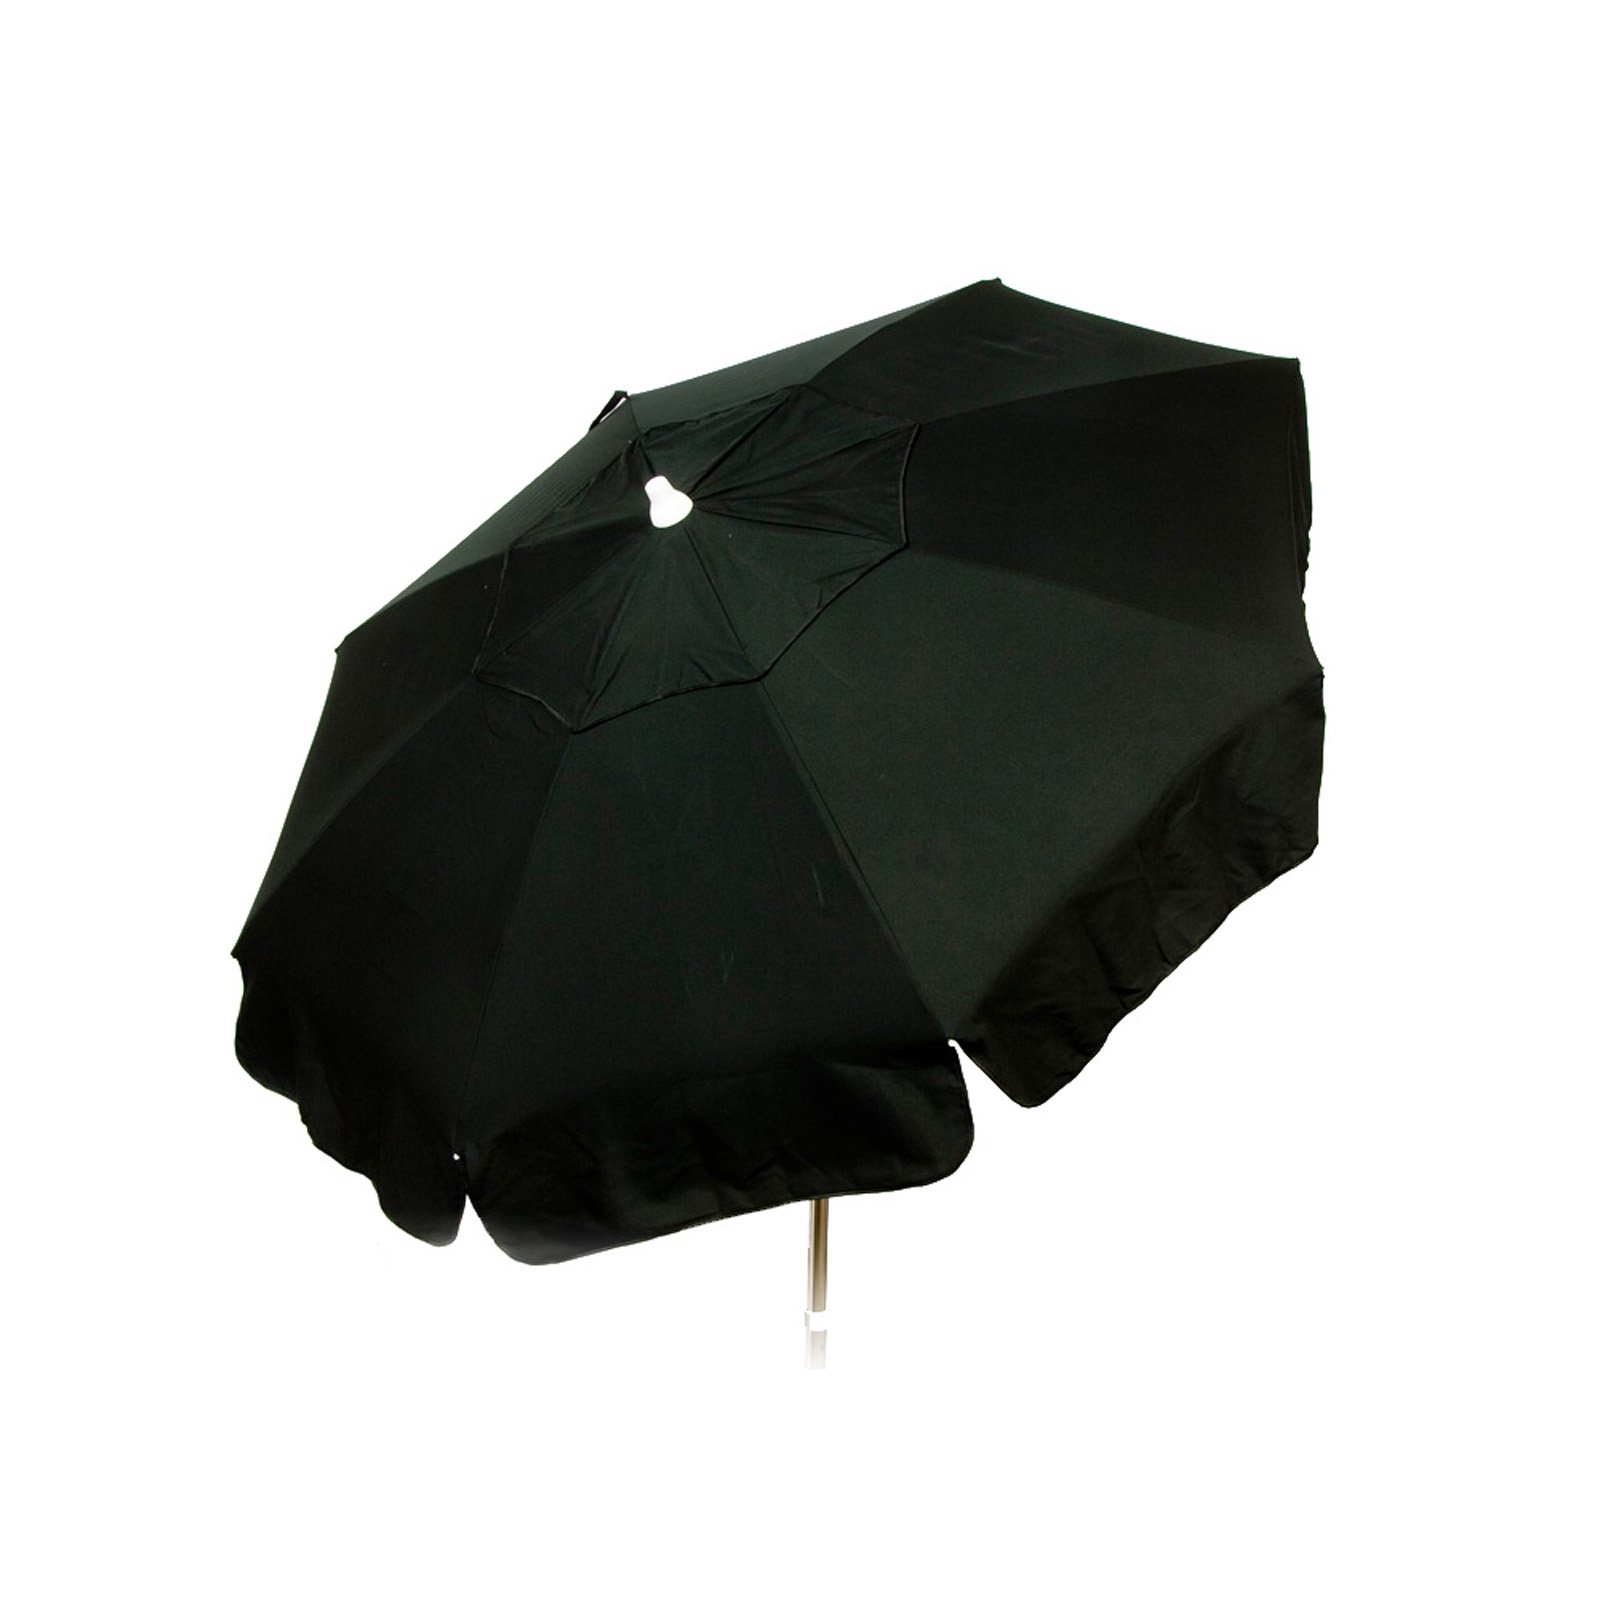 6ft Italian Market Tilt Umbrella Home Patio Canopy Sun Shelter Black Beach Pole